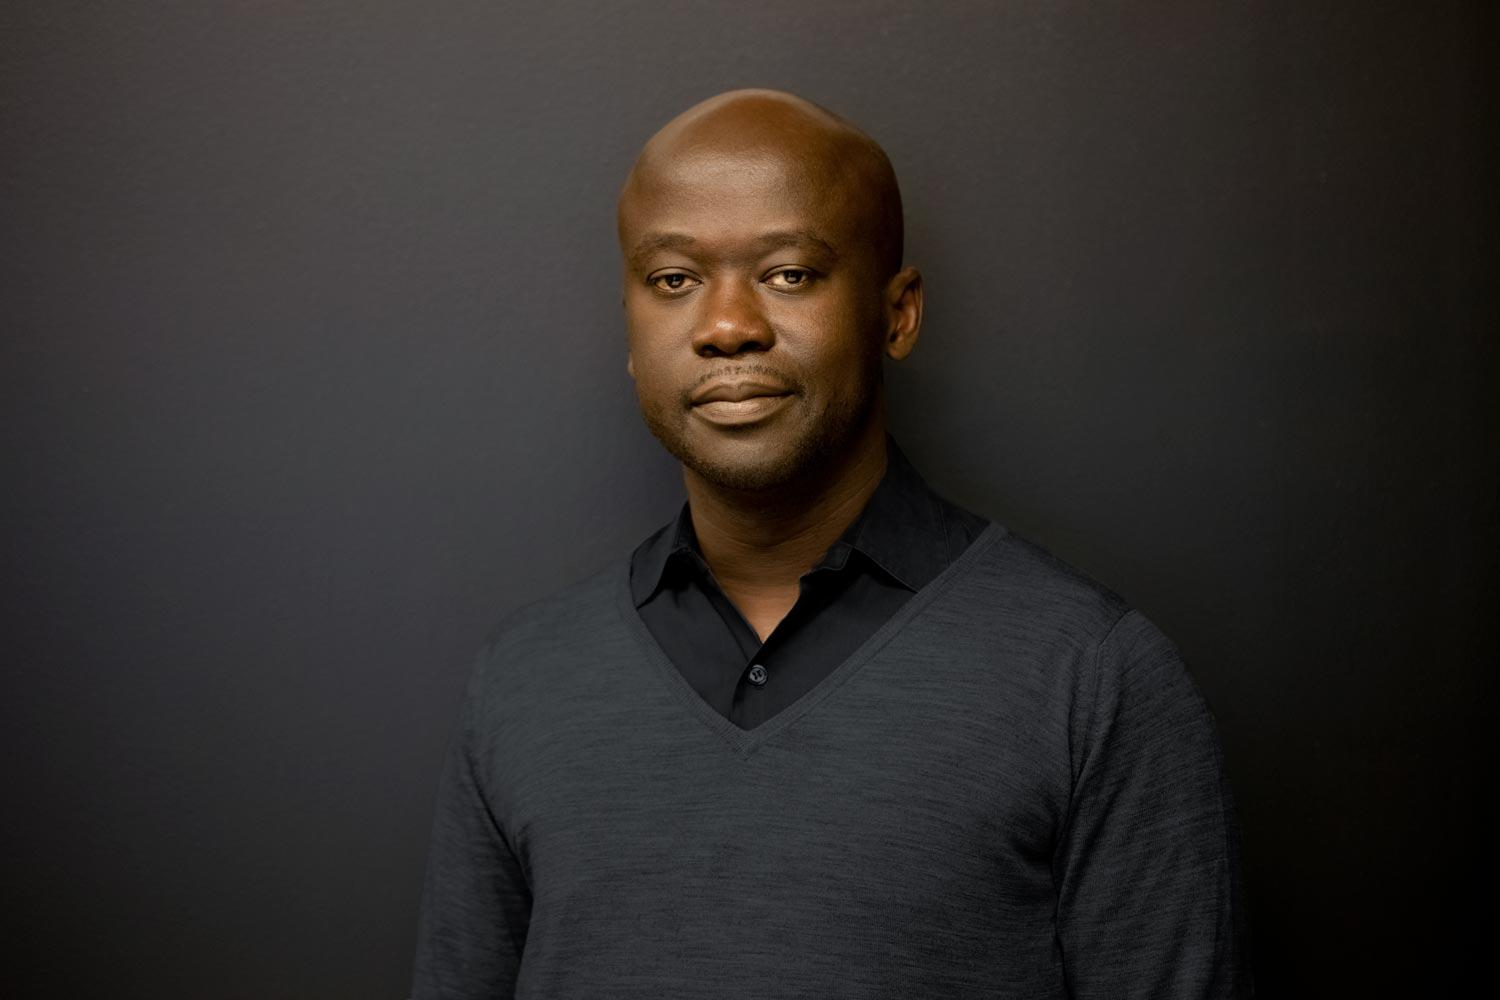 Sir David Adjaye is recognized as a leading architect of his generation. (Photo by Ed Reeve)